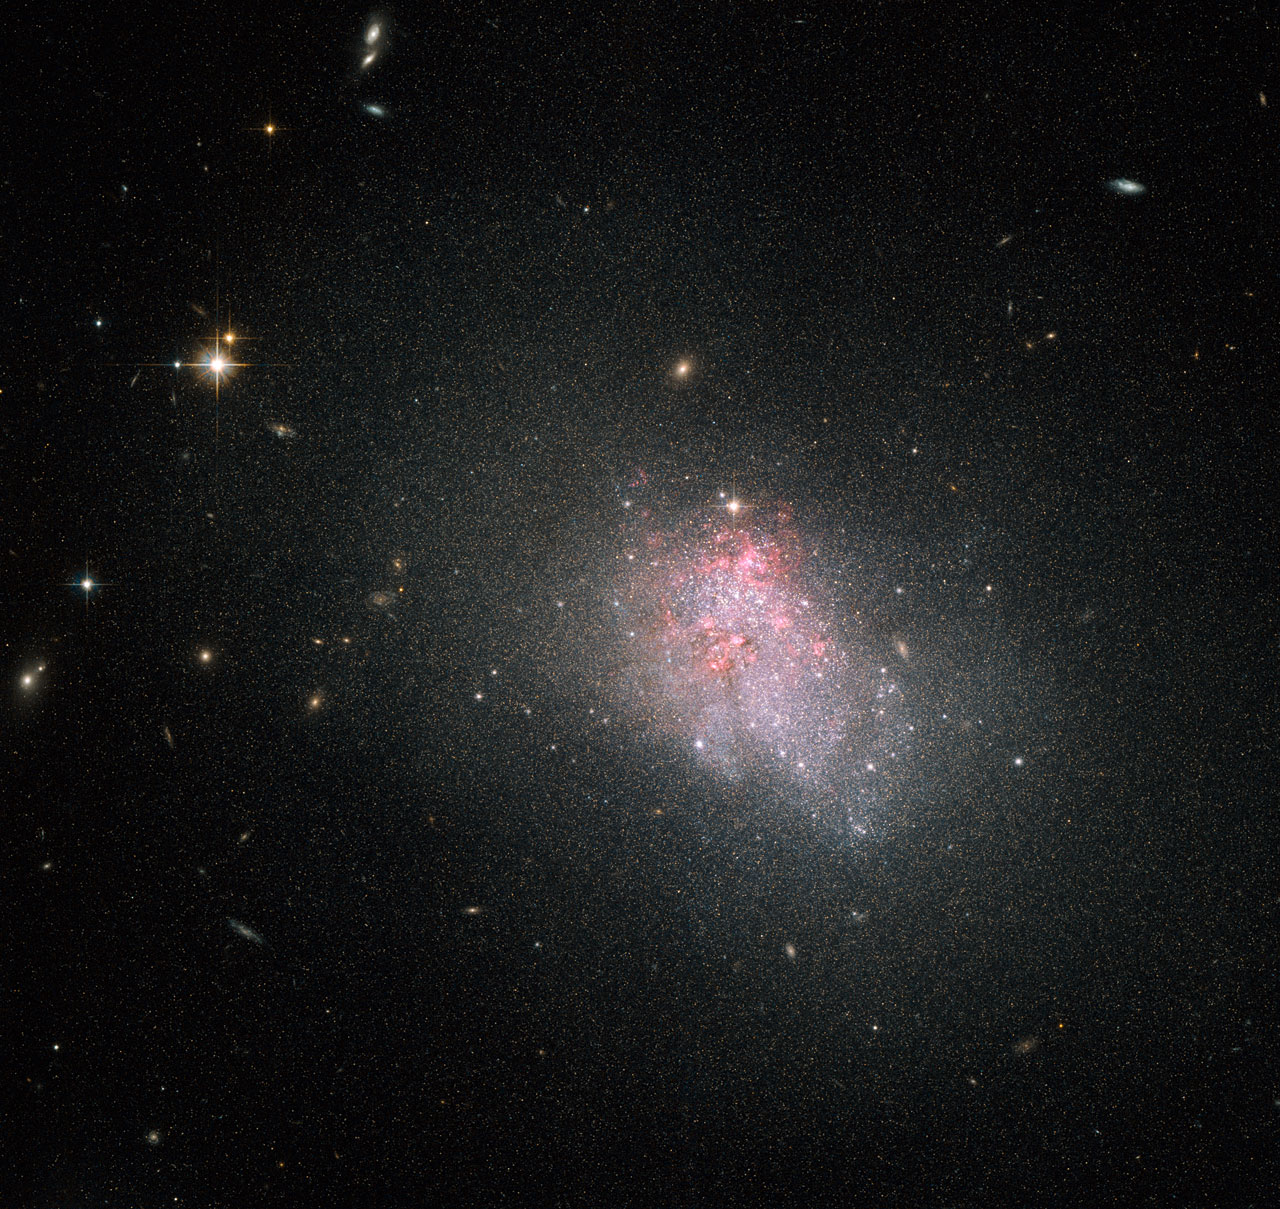 Hubble Image of Star-Forming Dwarf Galaxy